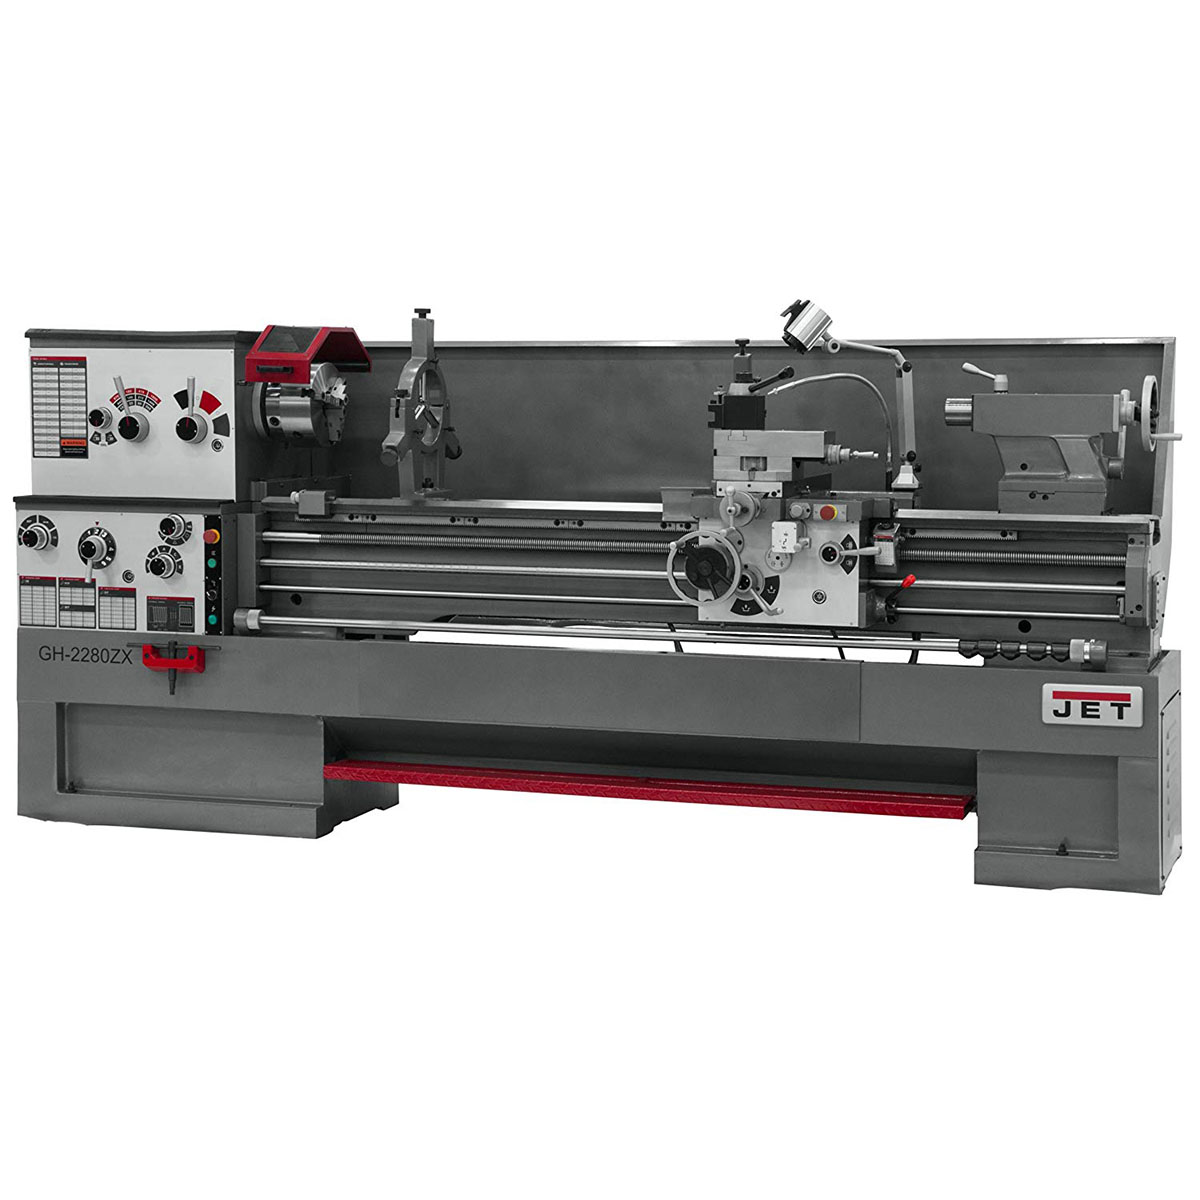 "22"" X 80"" New Jet Lathe Model GH-2280ZX"